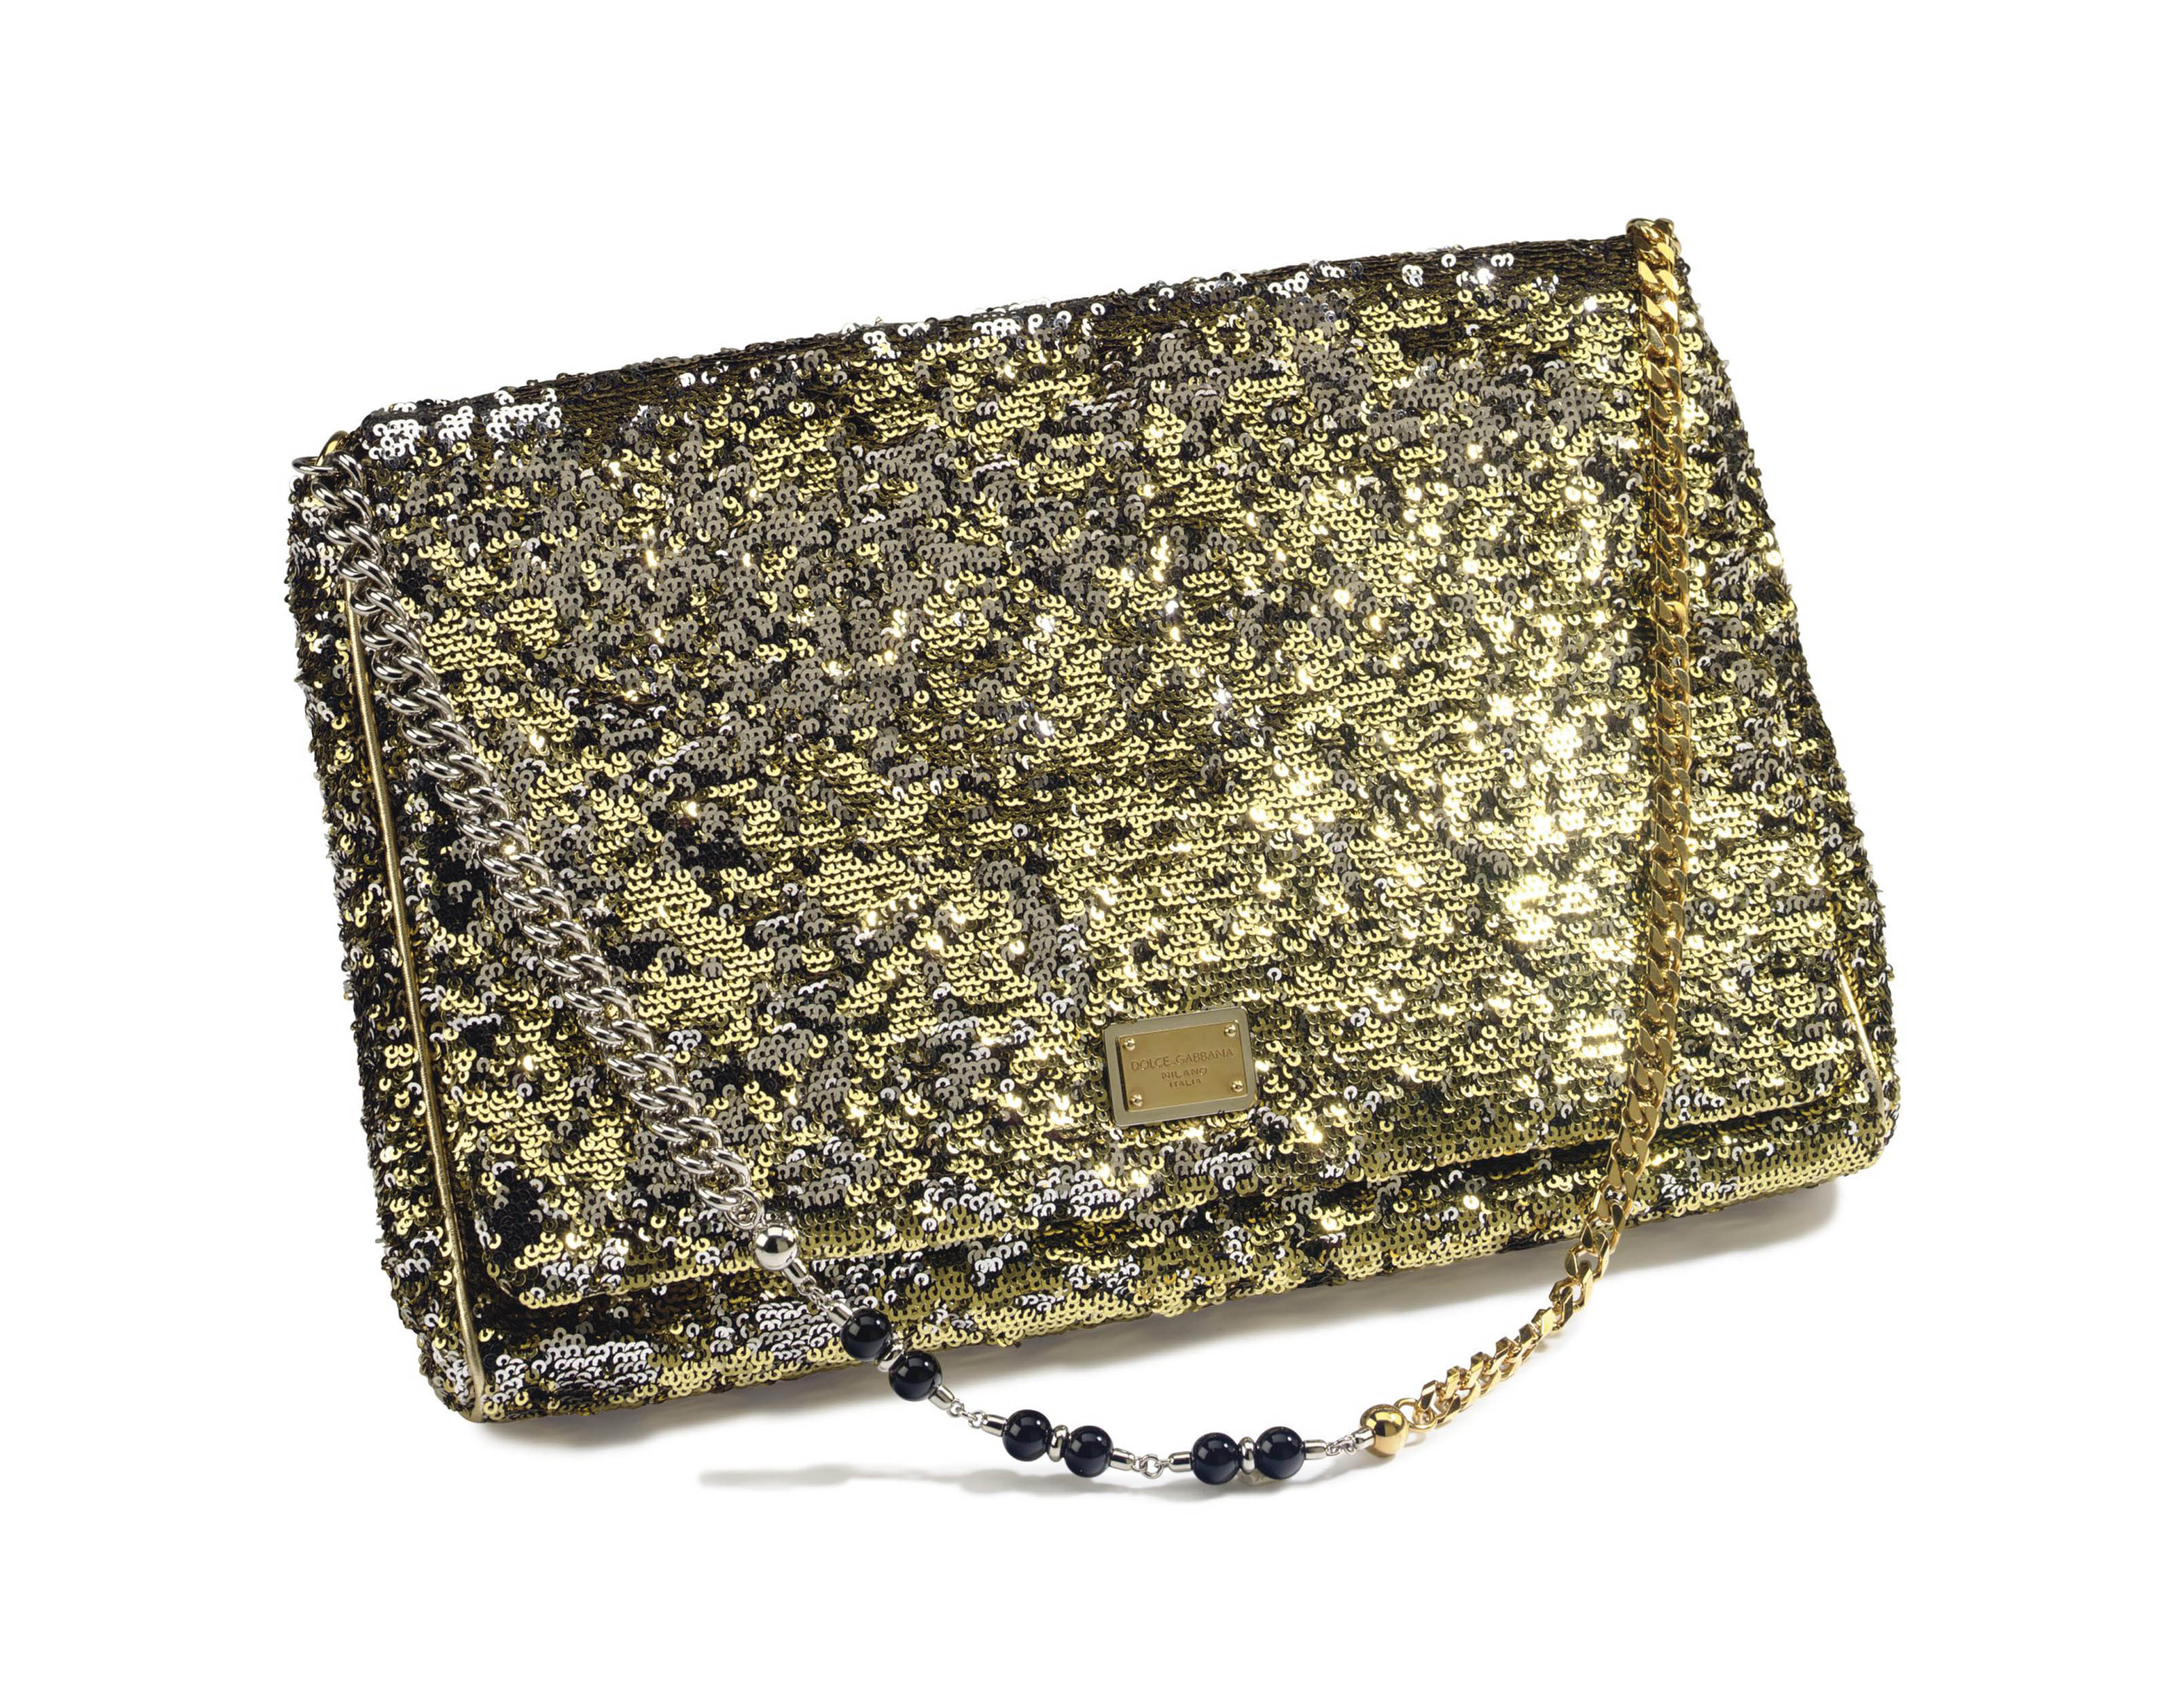 A SILVER AND GOLD SEQUINNED MISS CHARLES BAG